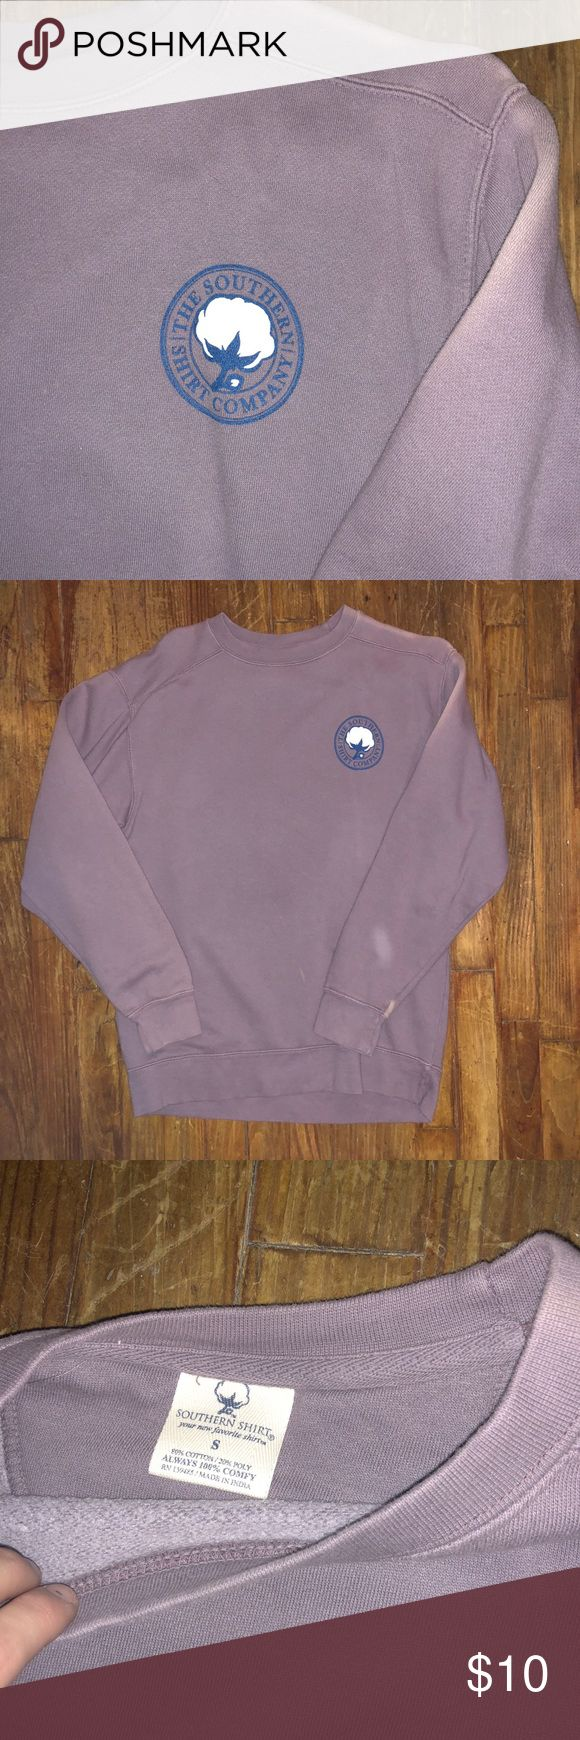 Southern shirt company sweatshirt Southern shirt company sweatshirt. Purplish color. Never worn but washed it and it faded and has a spot on the arm. Small more like a medium southern shirt company Jackets & Coats